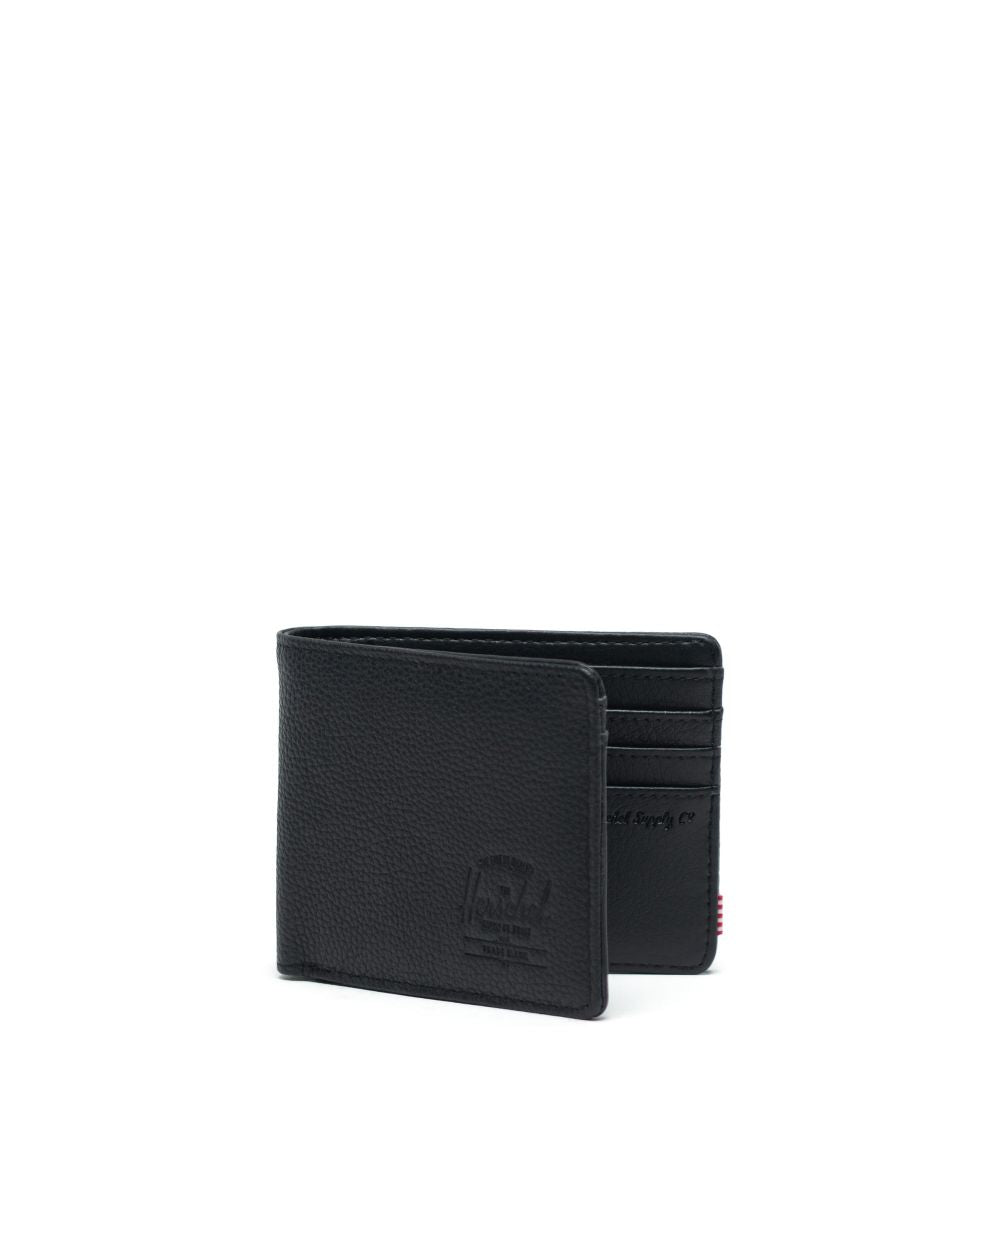 Hank+ Wallet (Blk Pebble Leather)